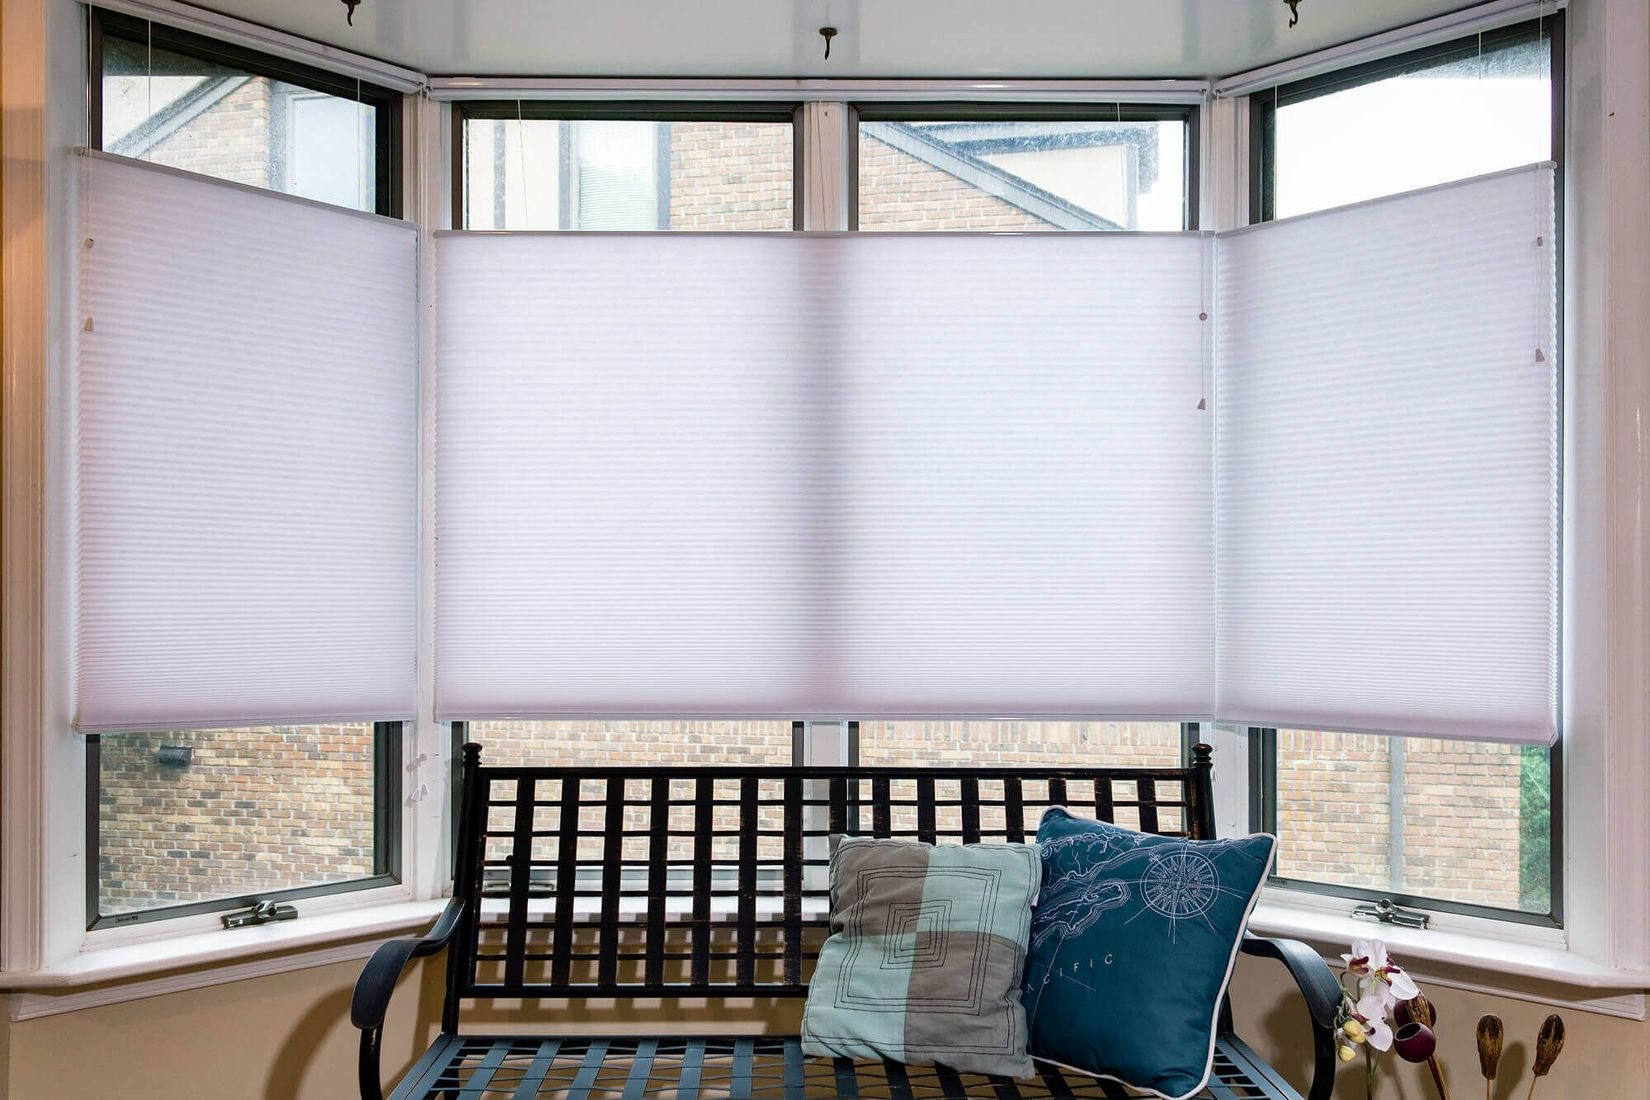 Honeycomb shades prestige cellular shades top down bottom